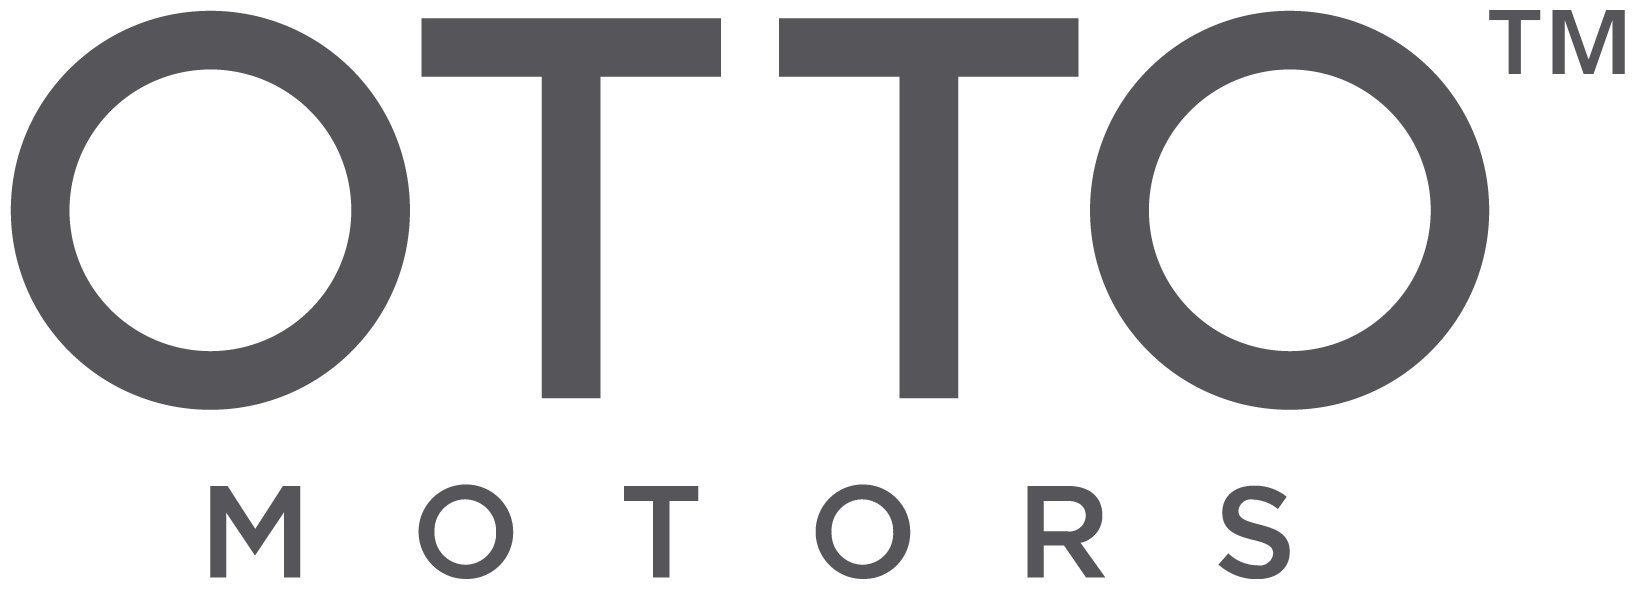 otto-motors-logo_dark.png